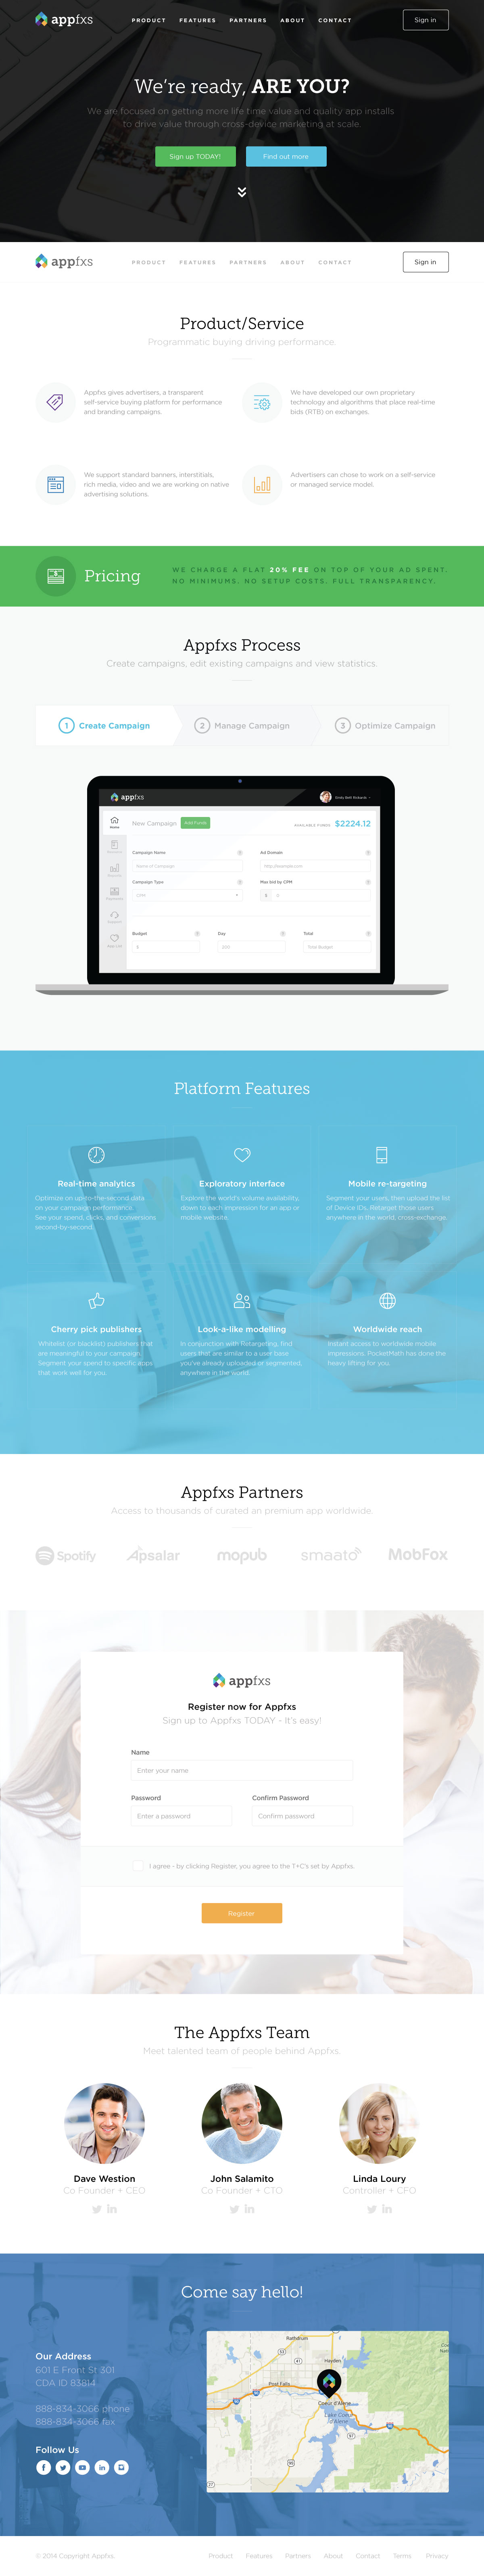 AppFXS site re-design